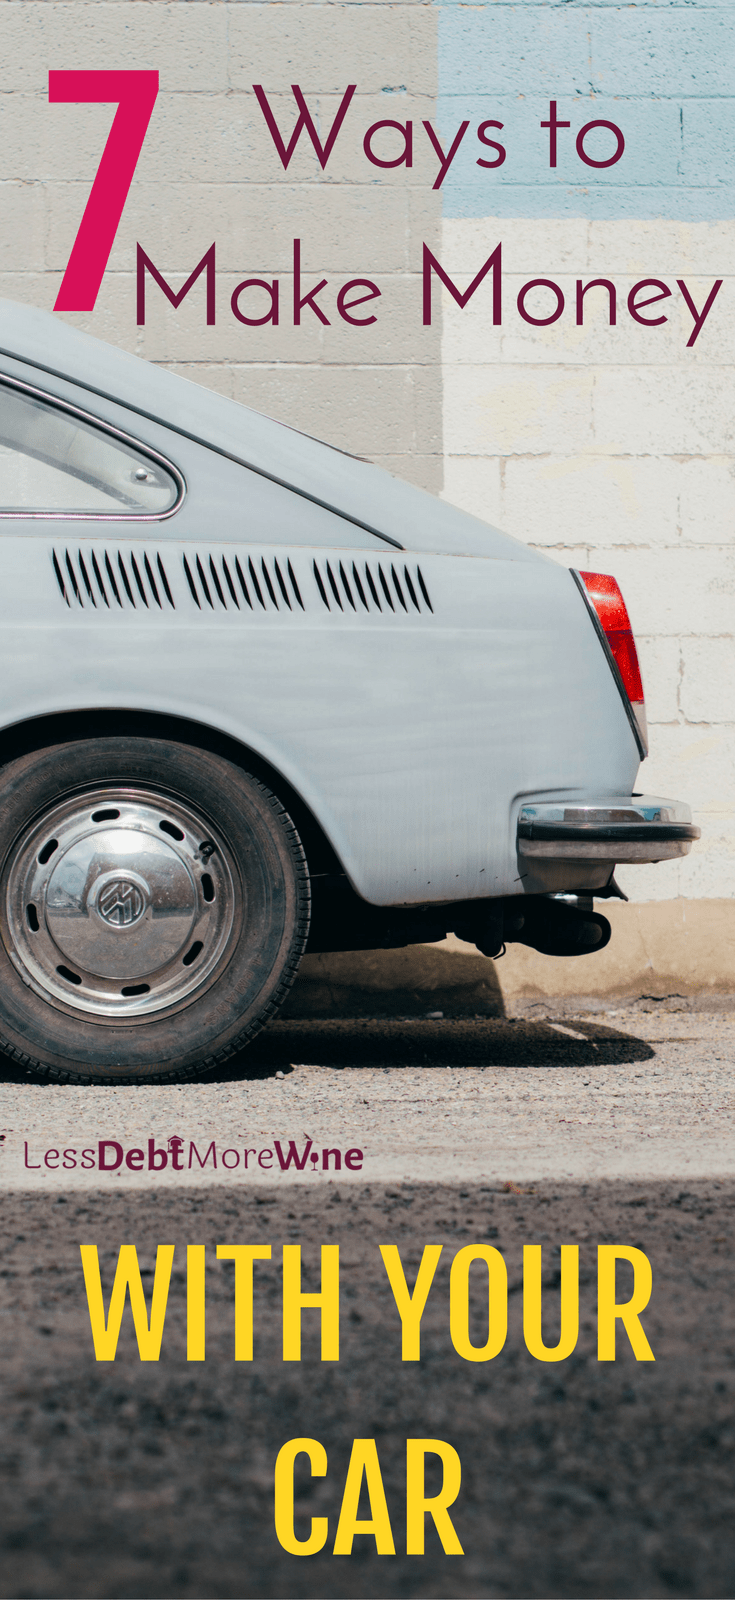 7 Ways to Make Money With Your Car - Less Debt, More Wine